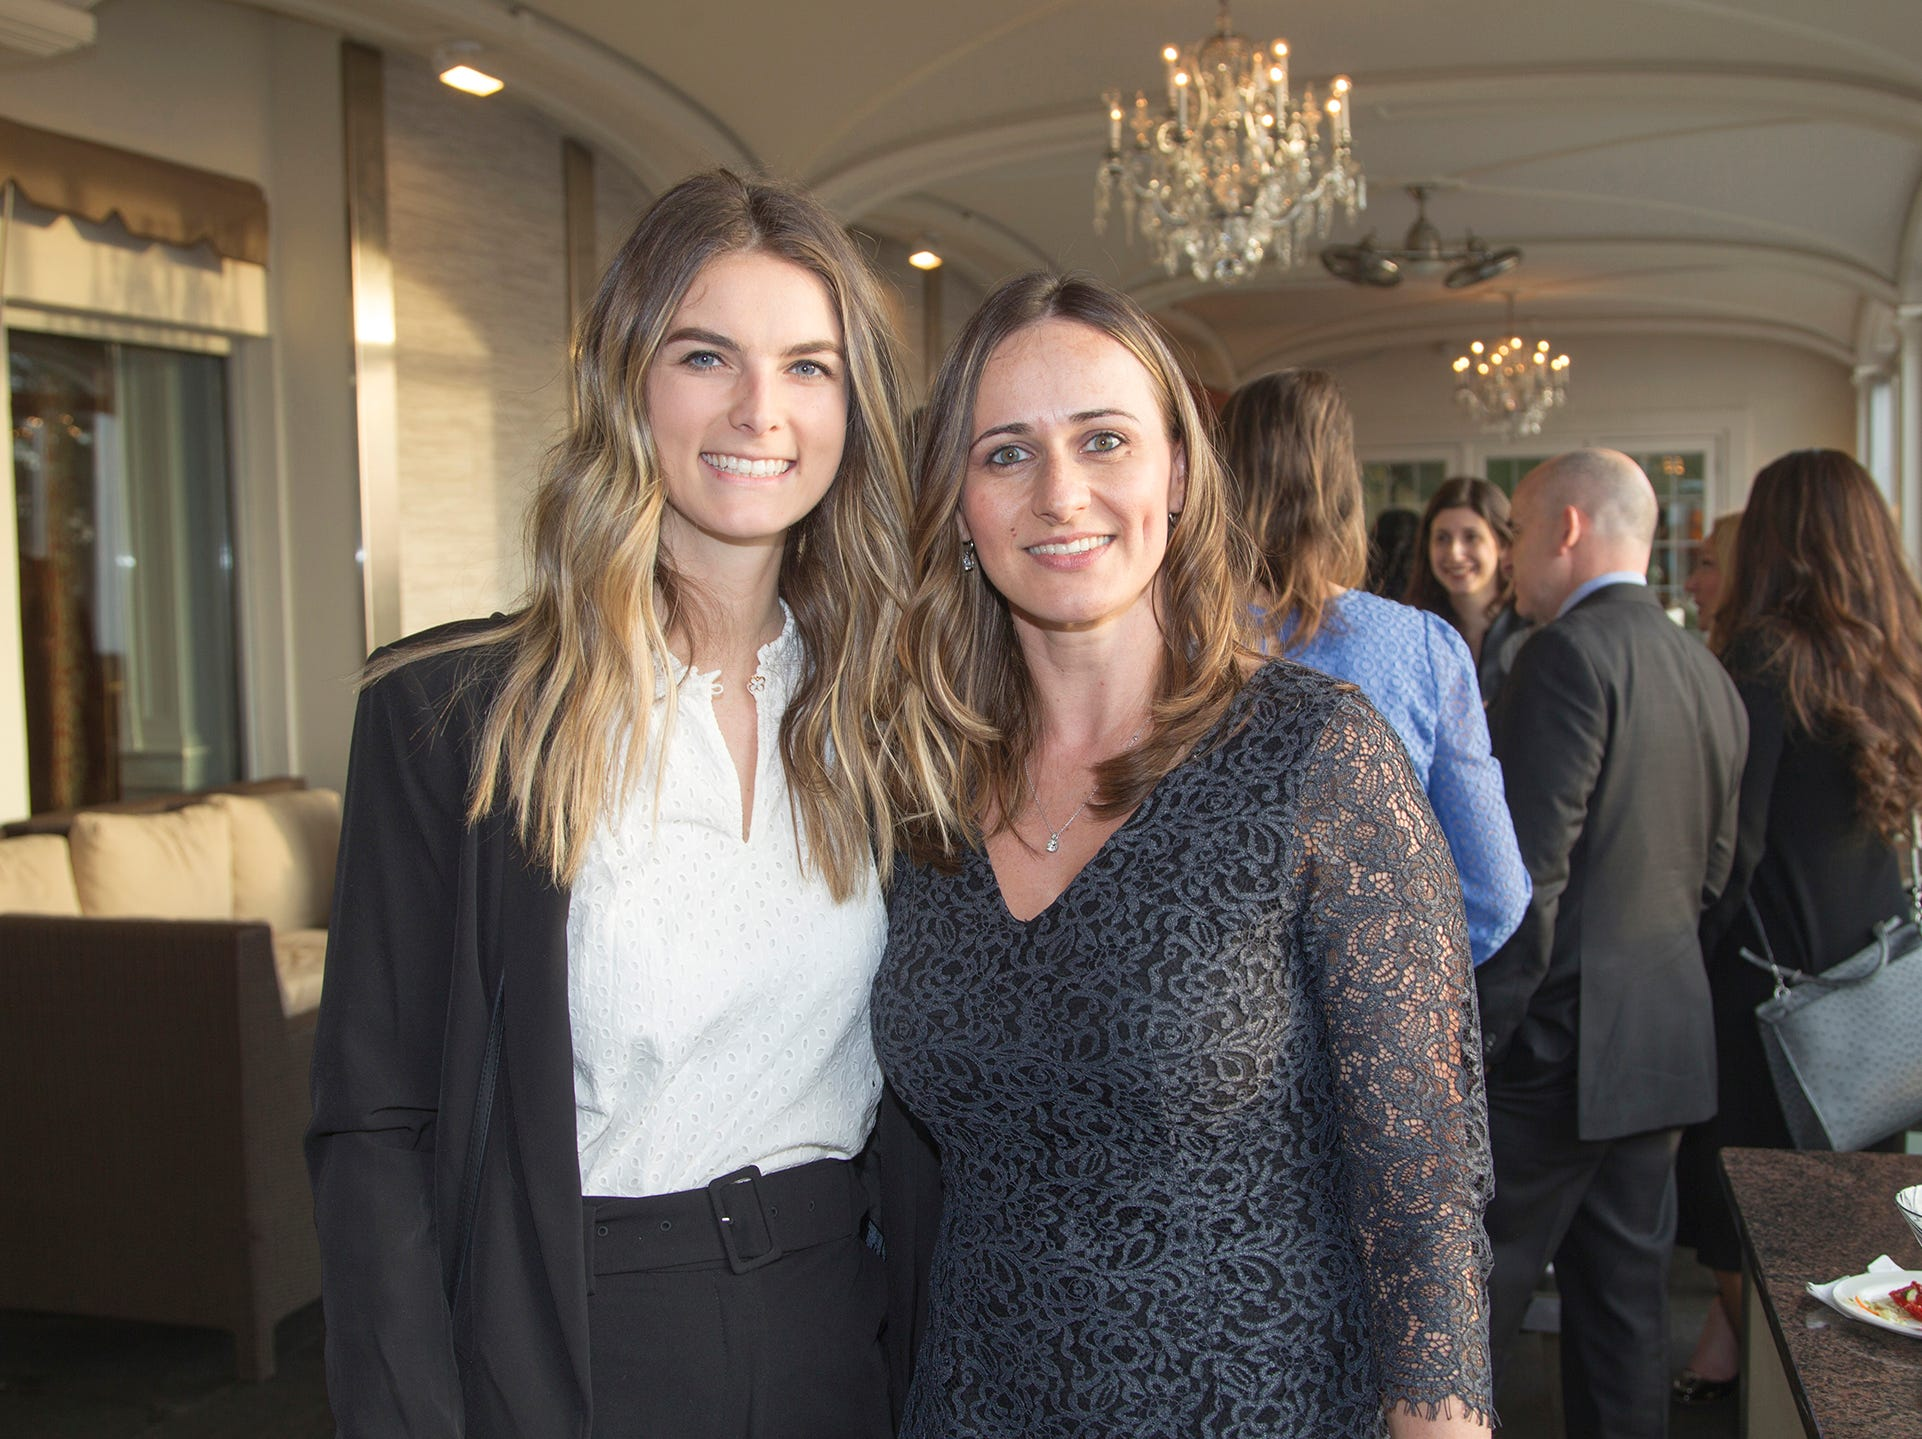 Kylie Rooney, Marta Jankowski. Girl Scouts of Northern New Jersey held its Women of Achievement 2019 at Westmount Country Club in Woodland Park. 04/04/2019